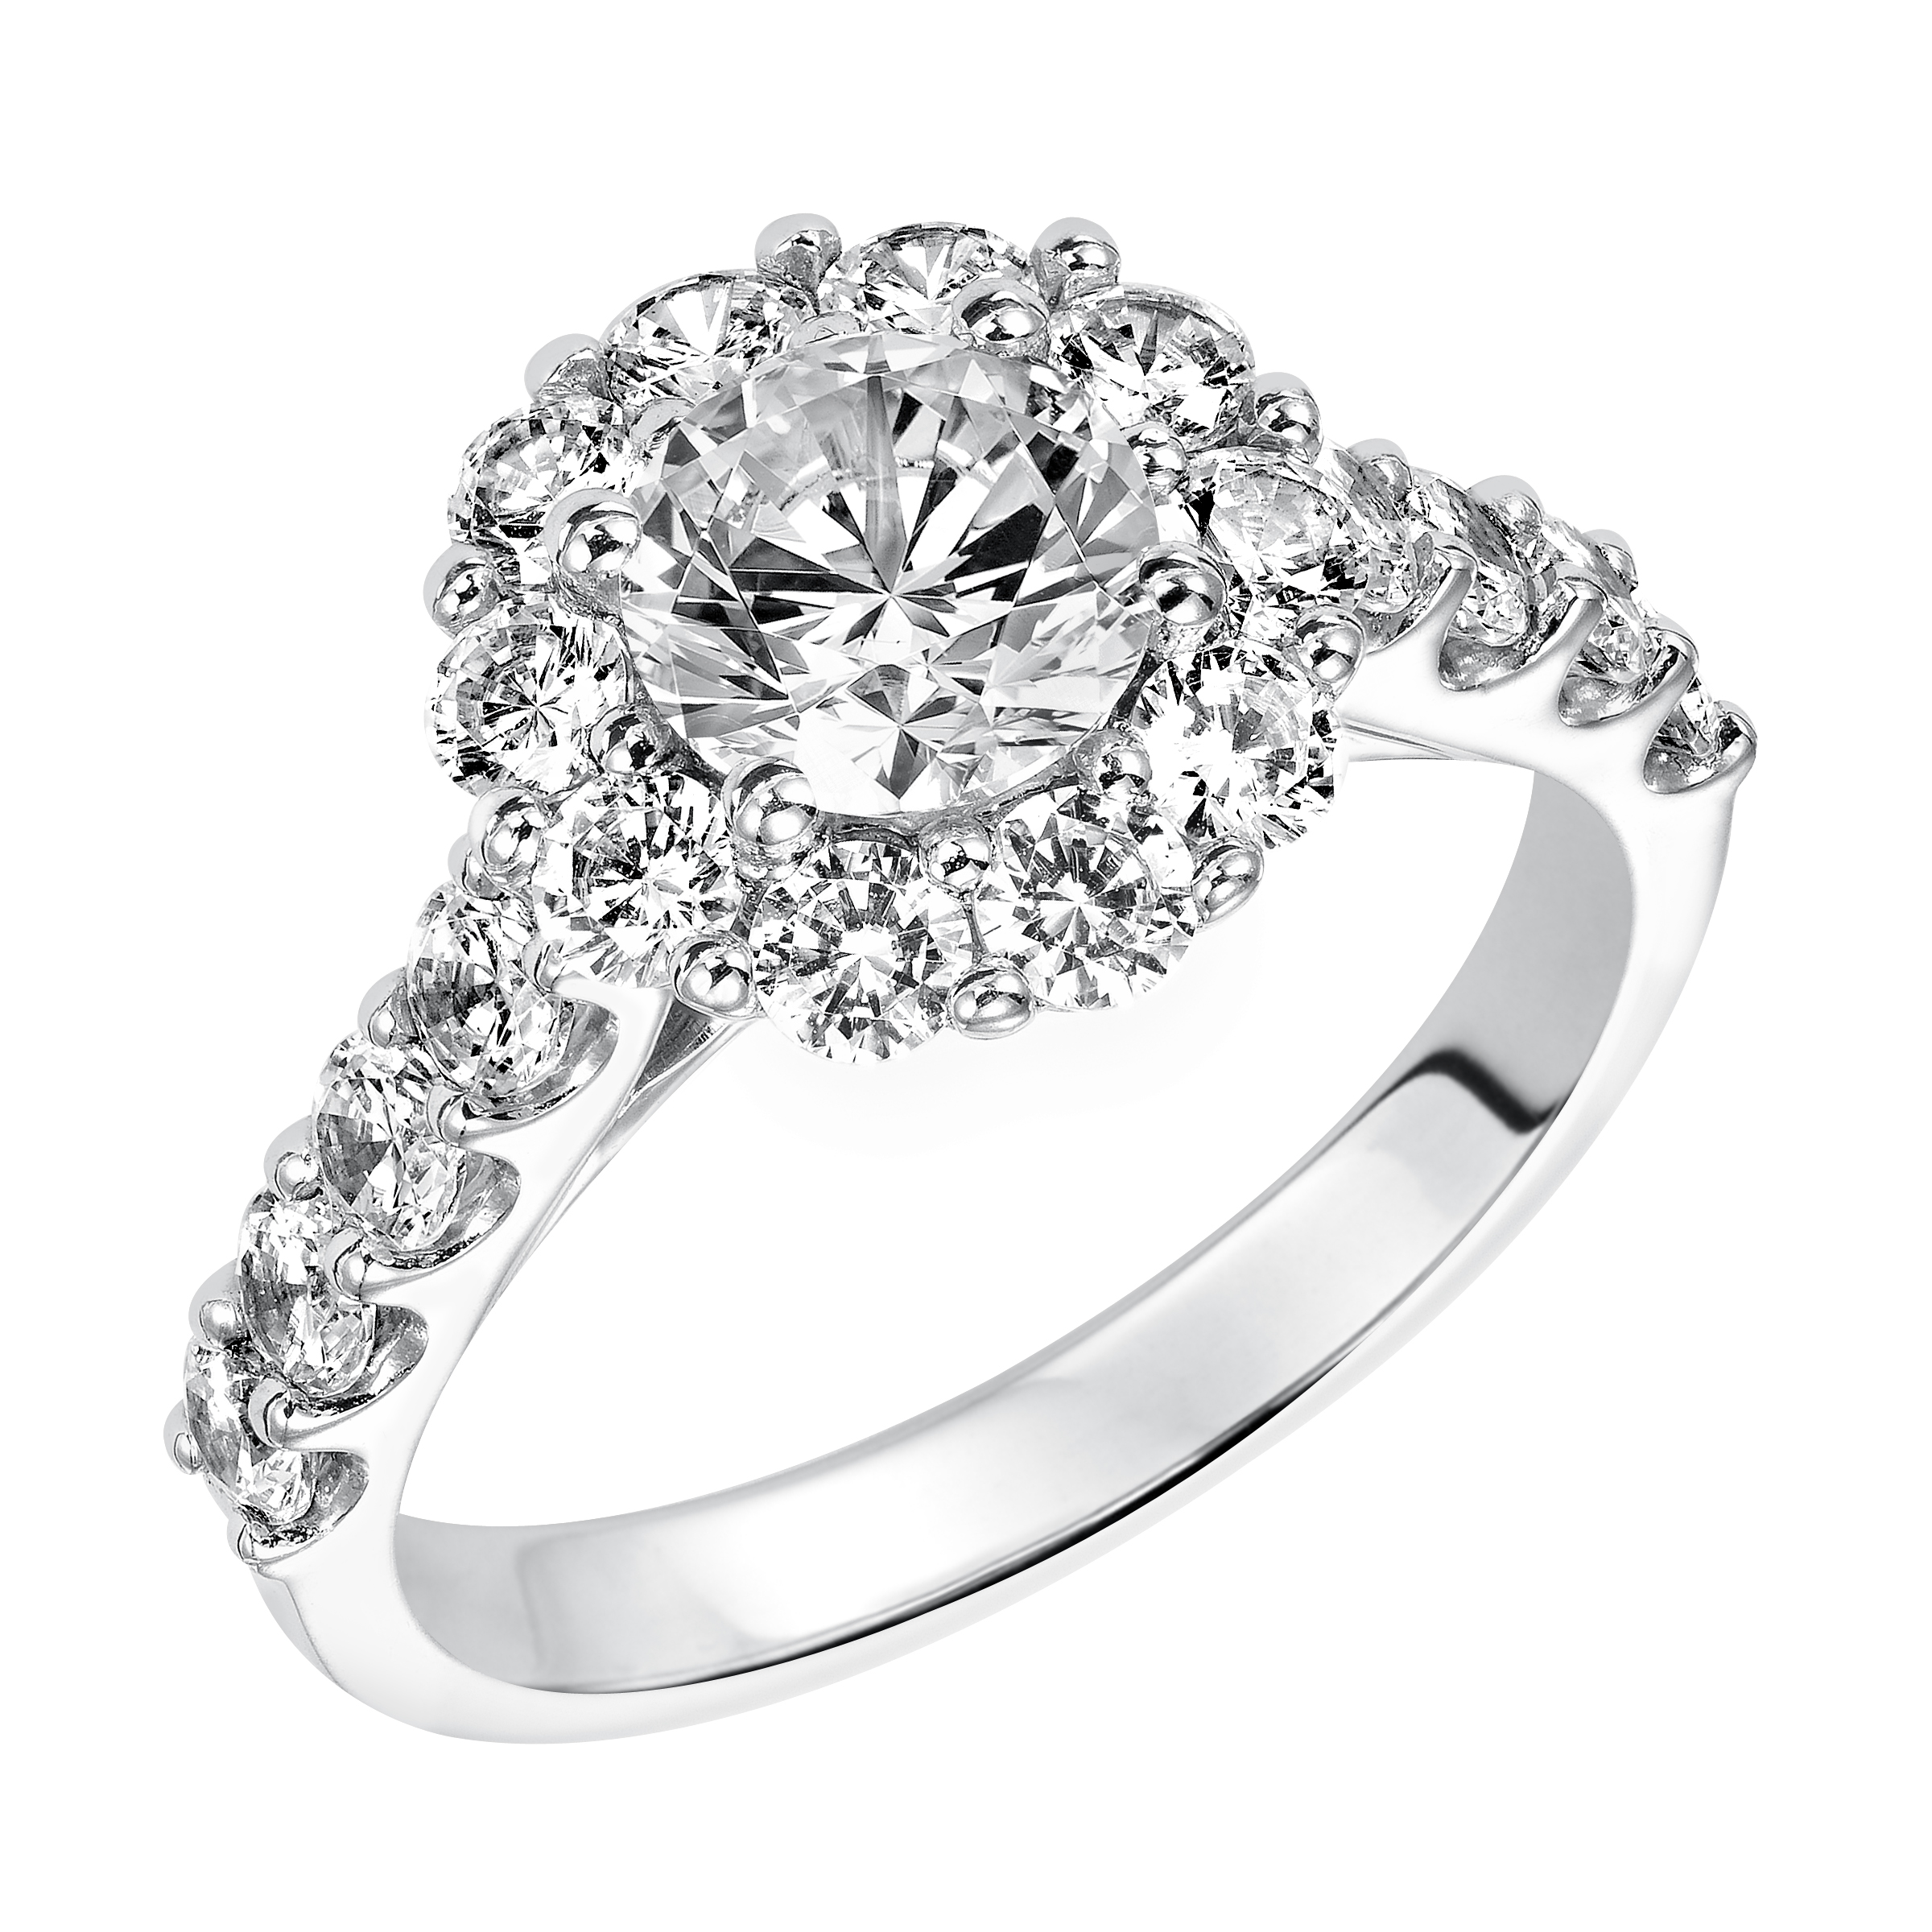 Halo Engagement Ring White Gold by Frederick Goldman